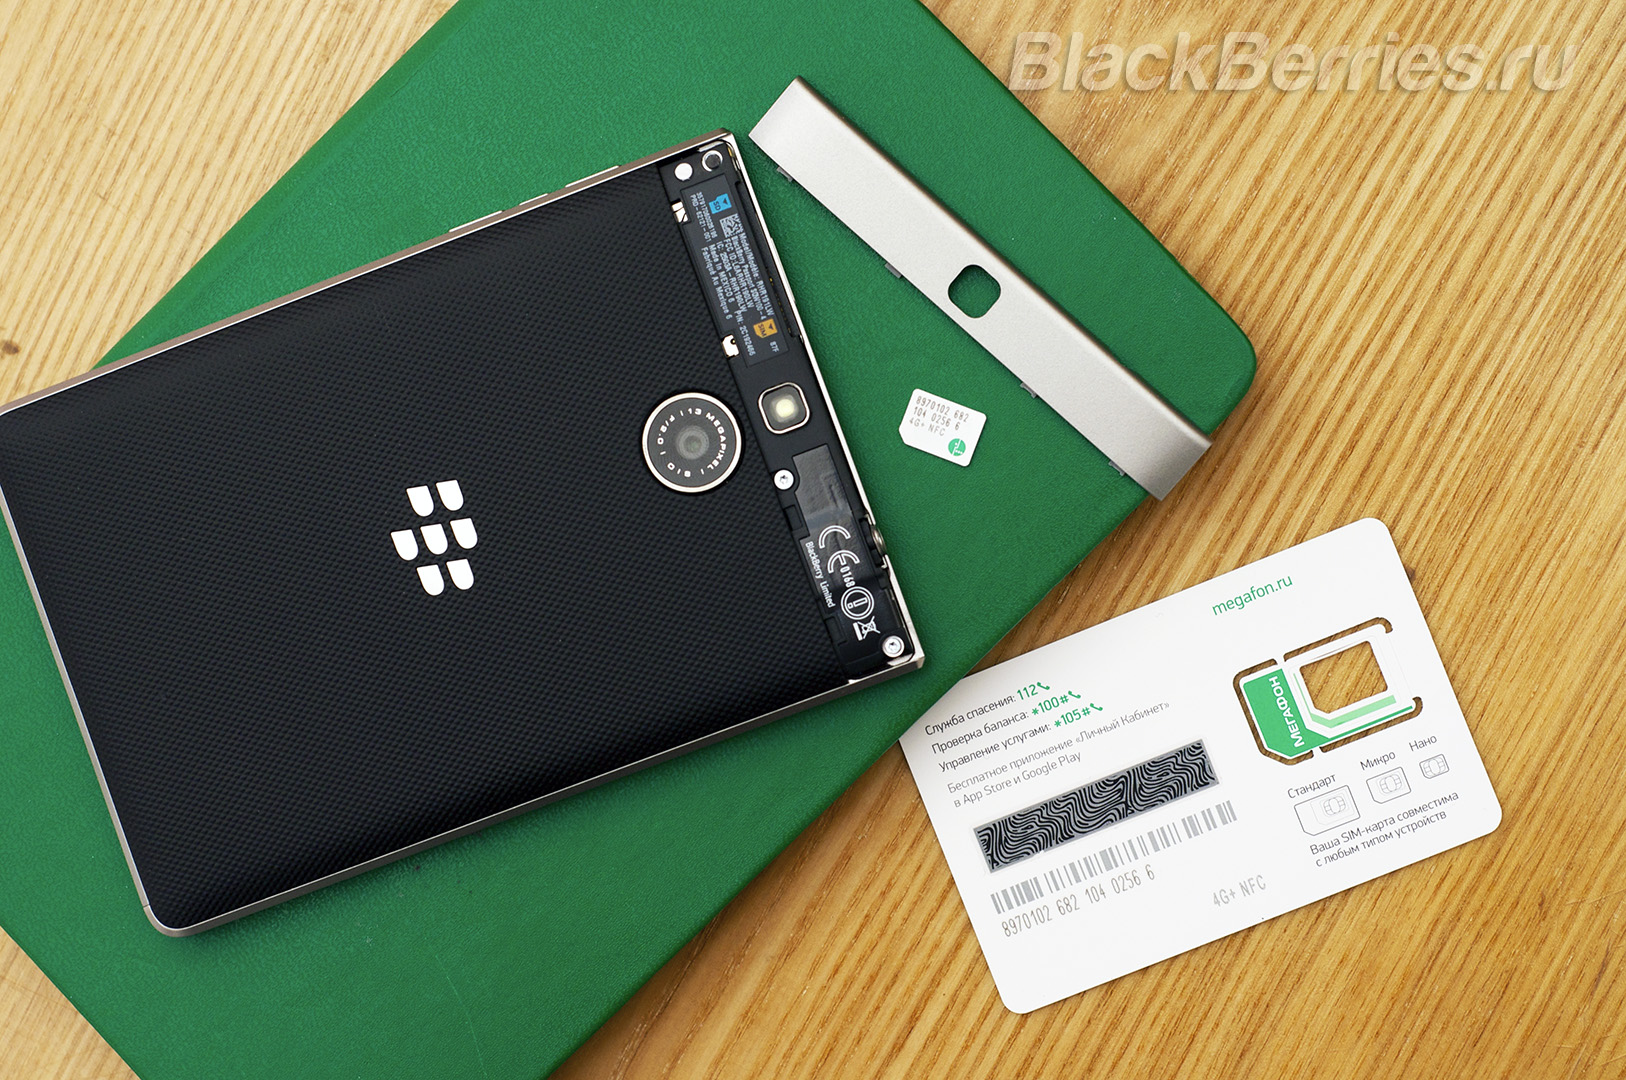 BlackBerry-Passport-MT-3